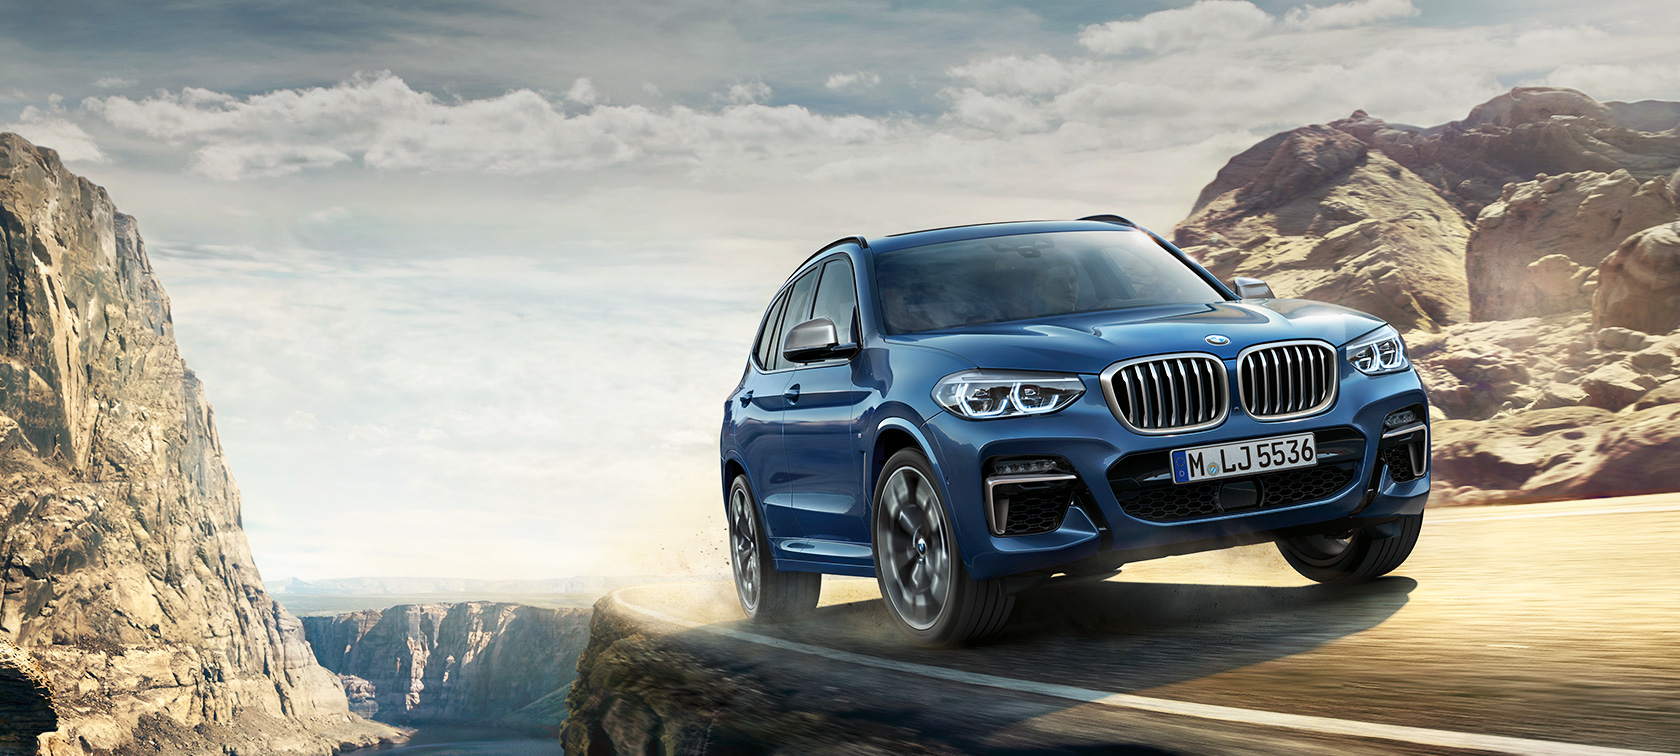 2020 BMW X3: Changes, Equipment, Price >> Bmw X3 Inspire New Vehicles Bmw Uk